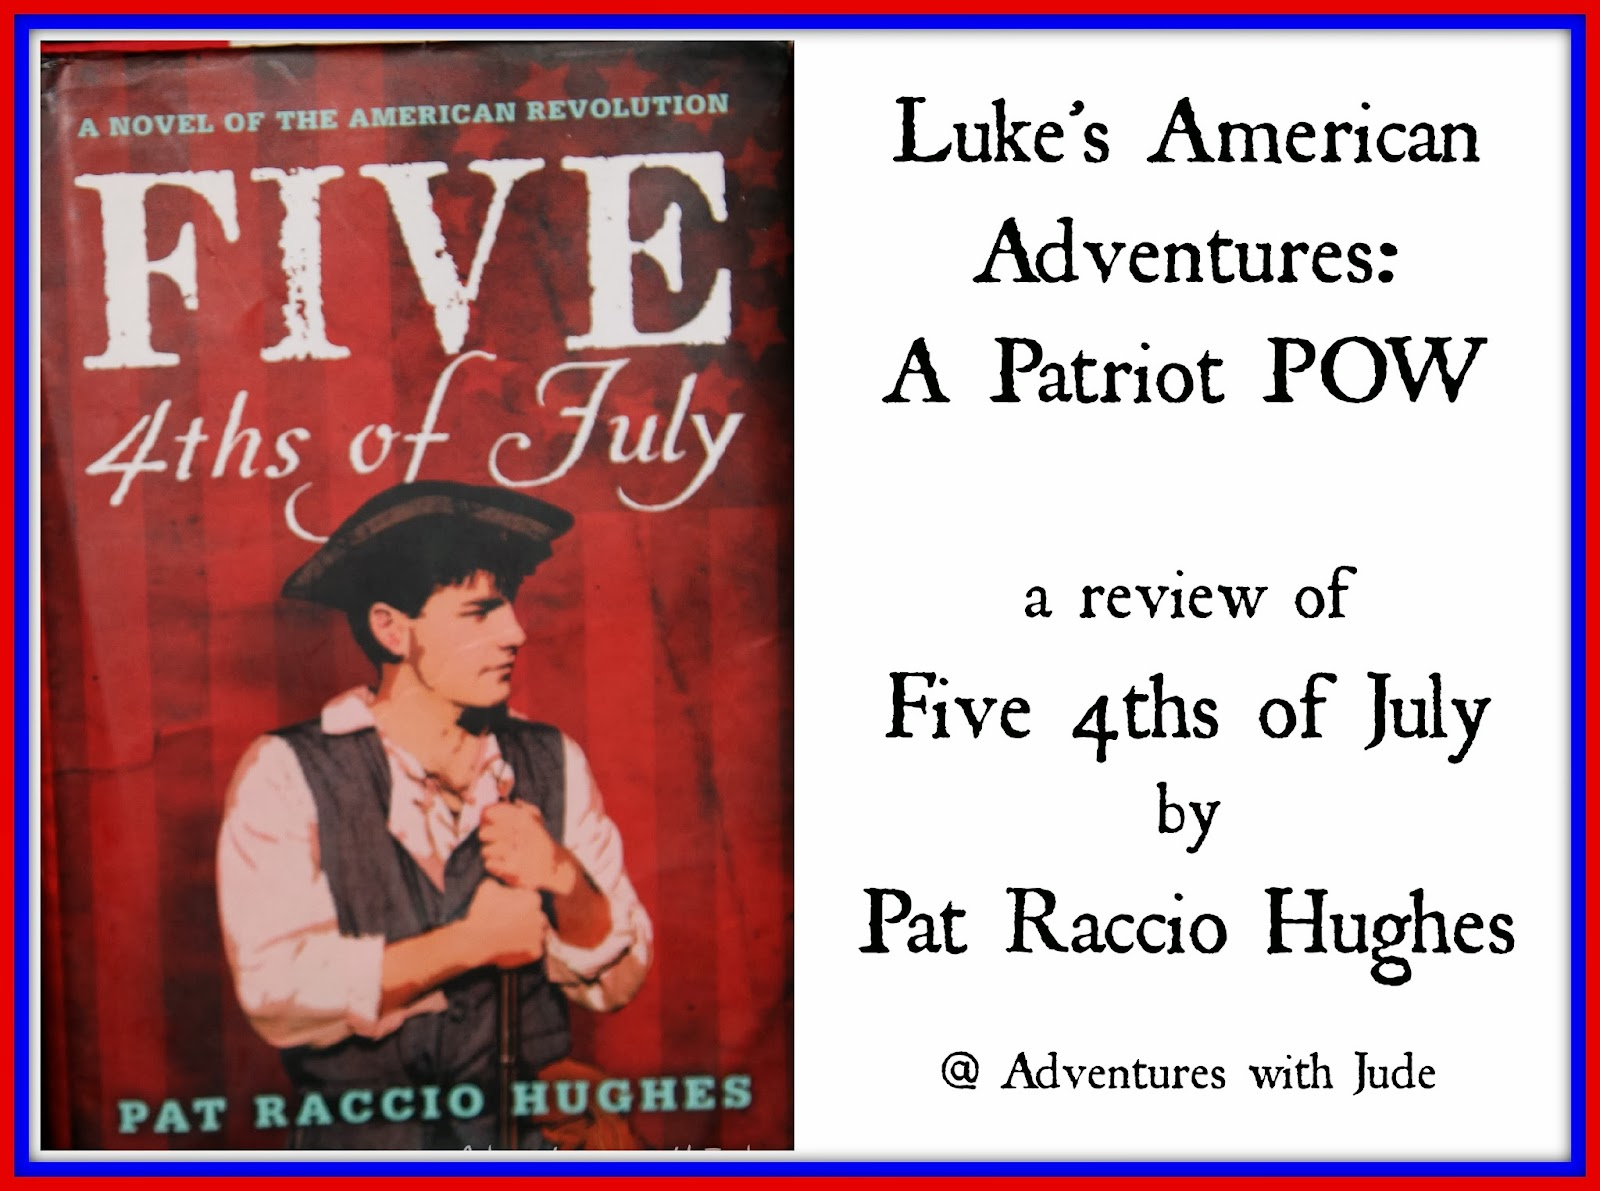 Five 4ths of July by Pat Raccio Hughes - a review writing exercise